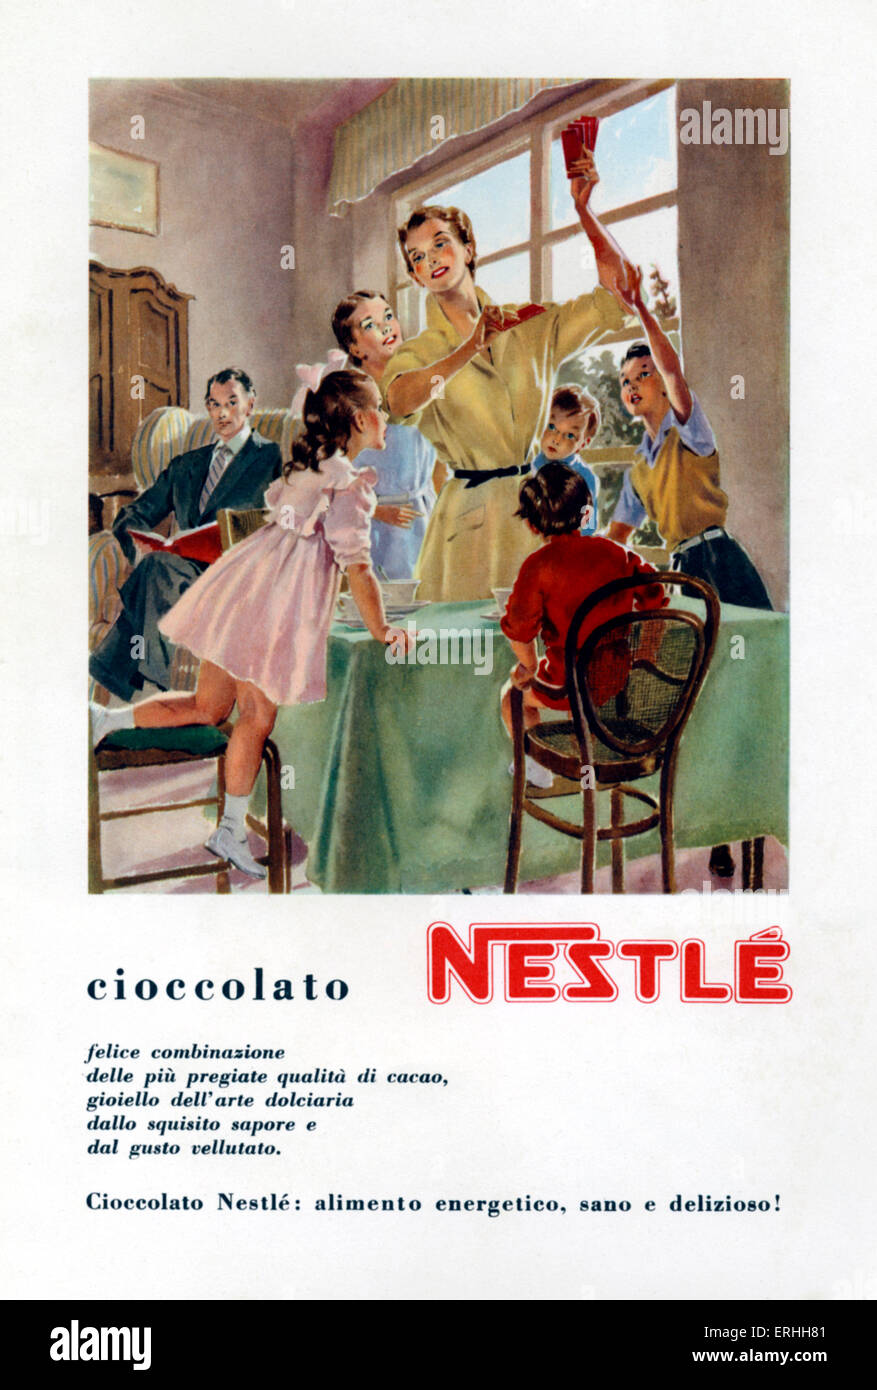 Advertisement for Nestlé chocolate showing a happy family with mother, five children and father in chair watching. - Stock Image